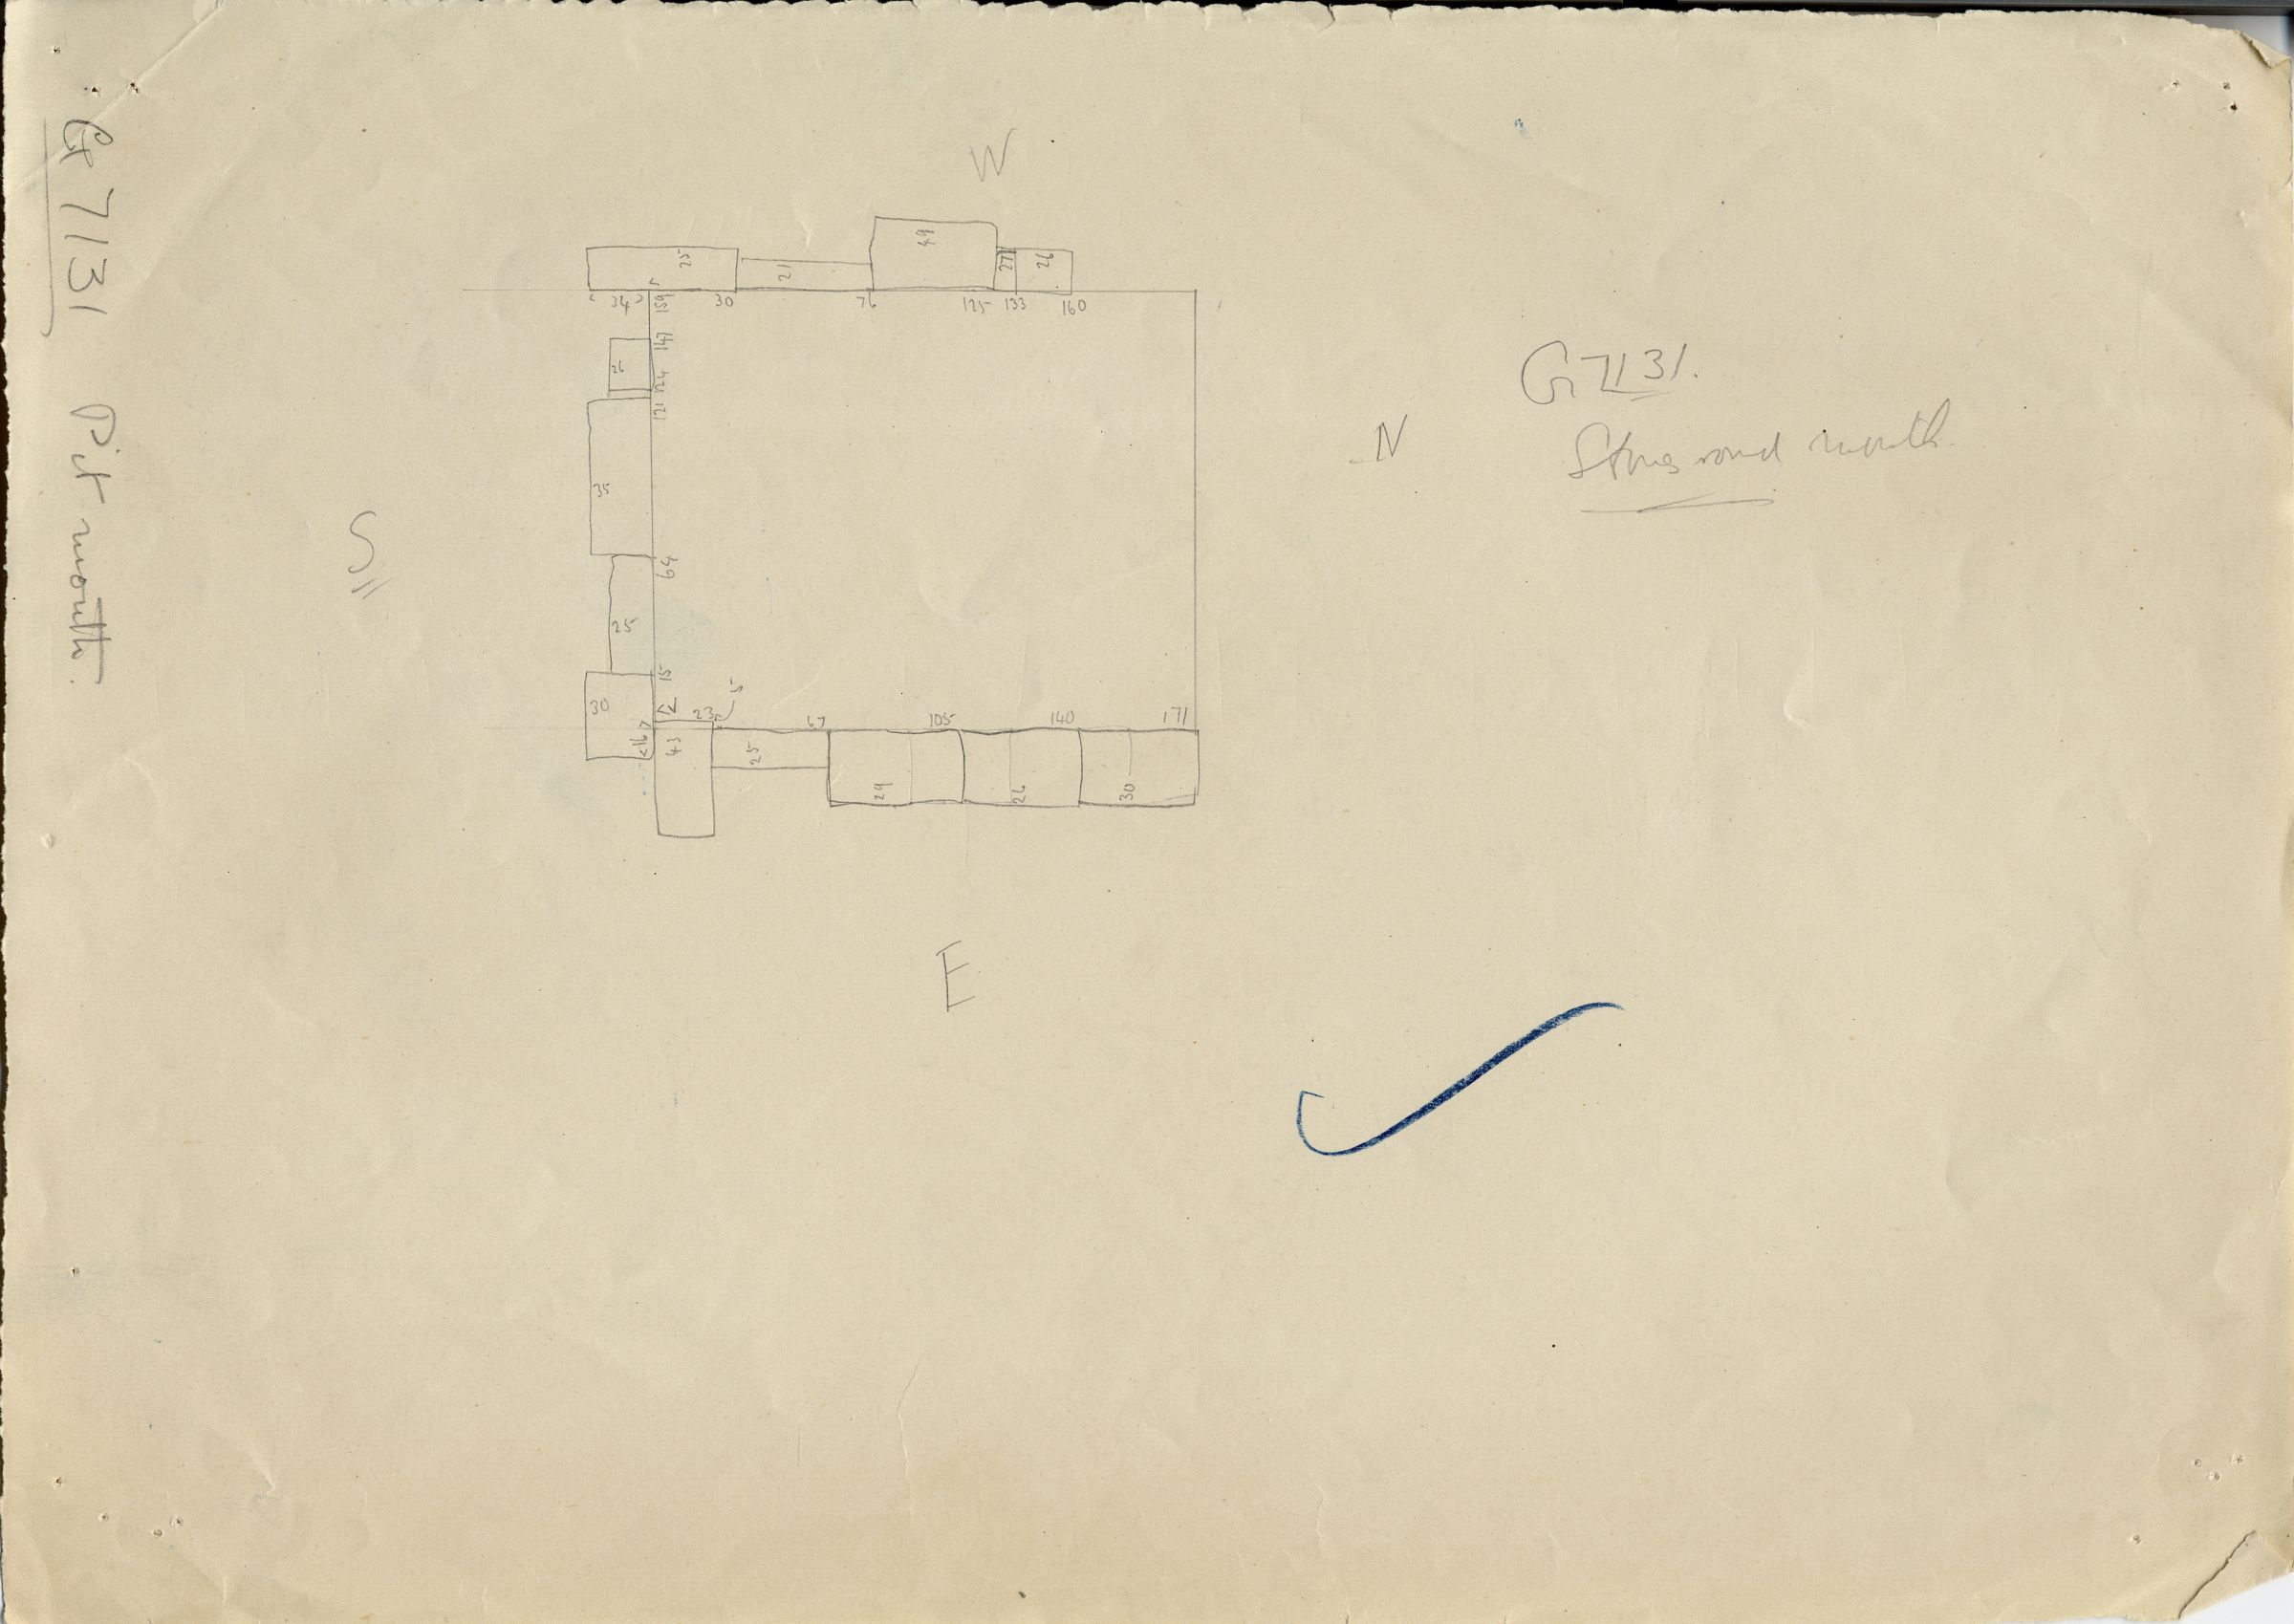 Maps and plans: G 7131, Shaft A